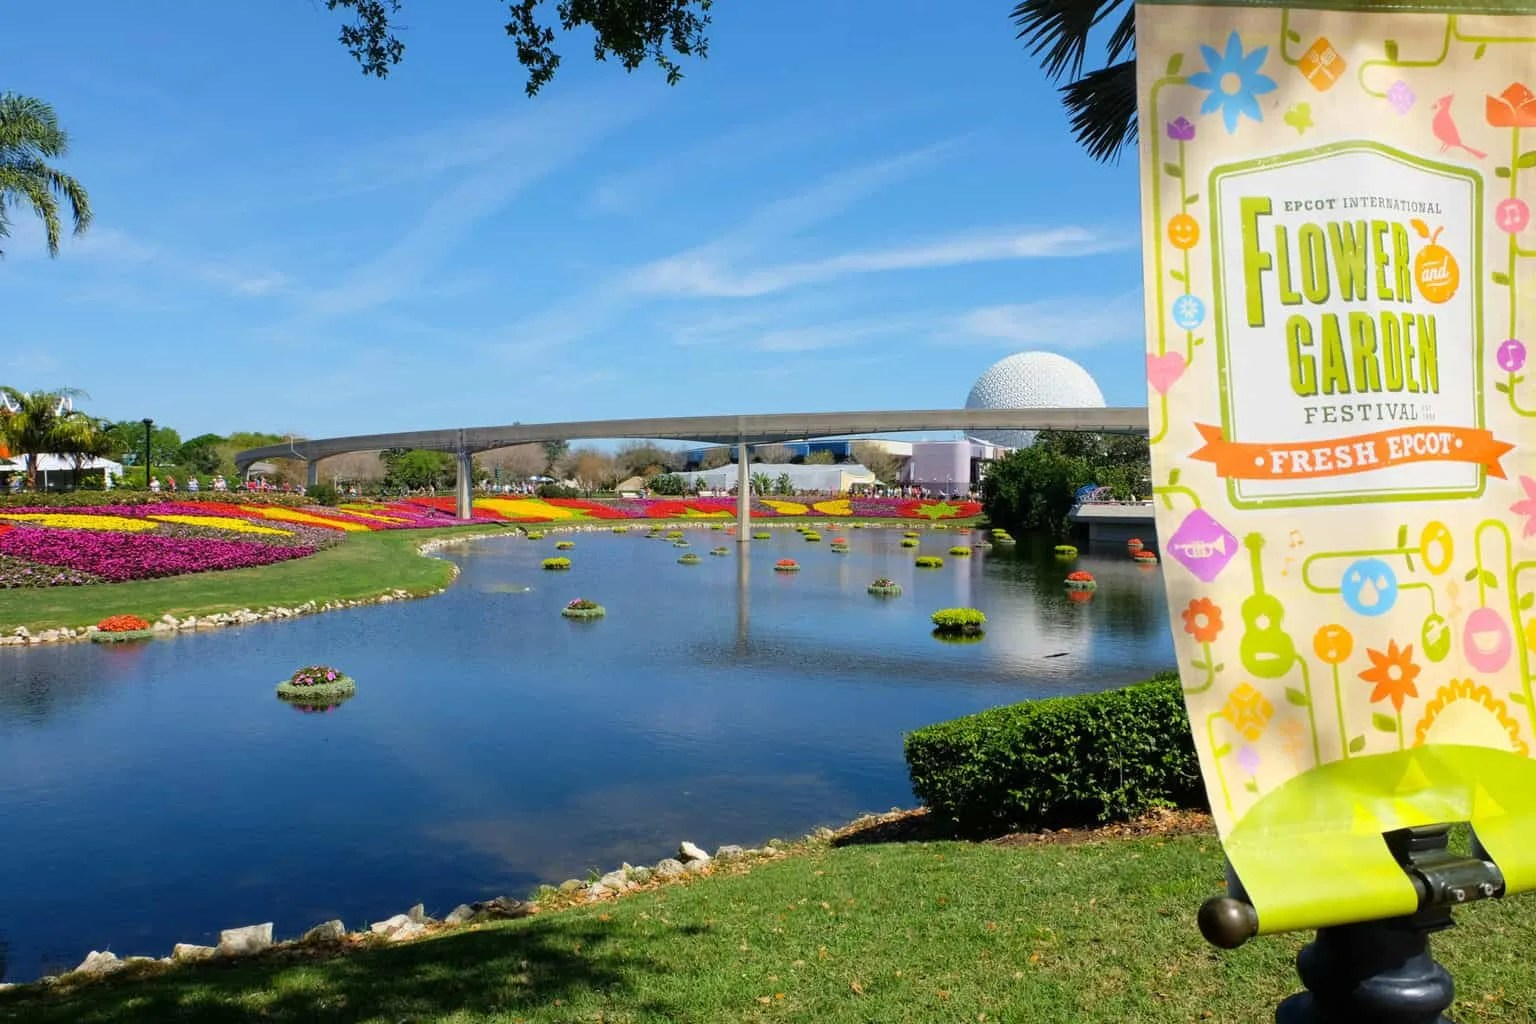 15 Foods to try at Epcot's Flower and Garden Festival (and 5 you can skip)